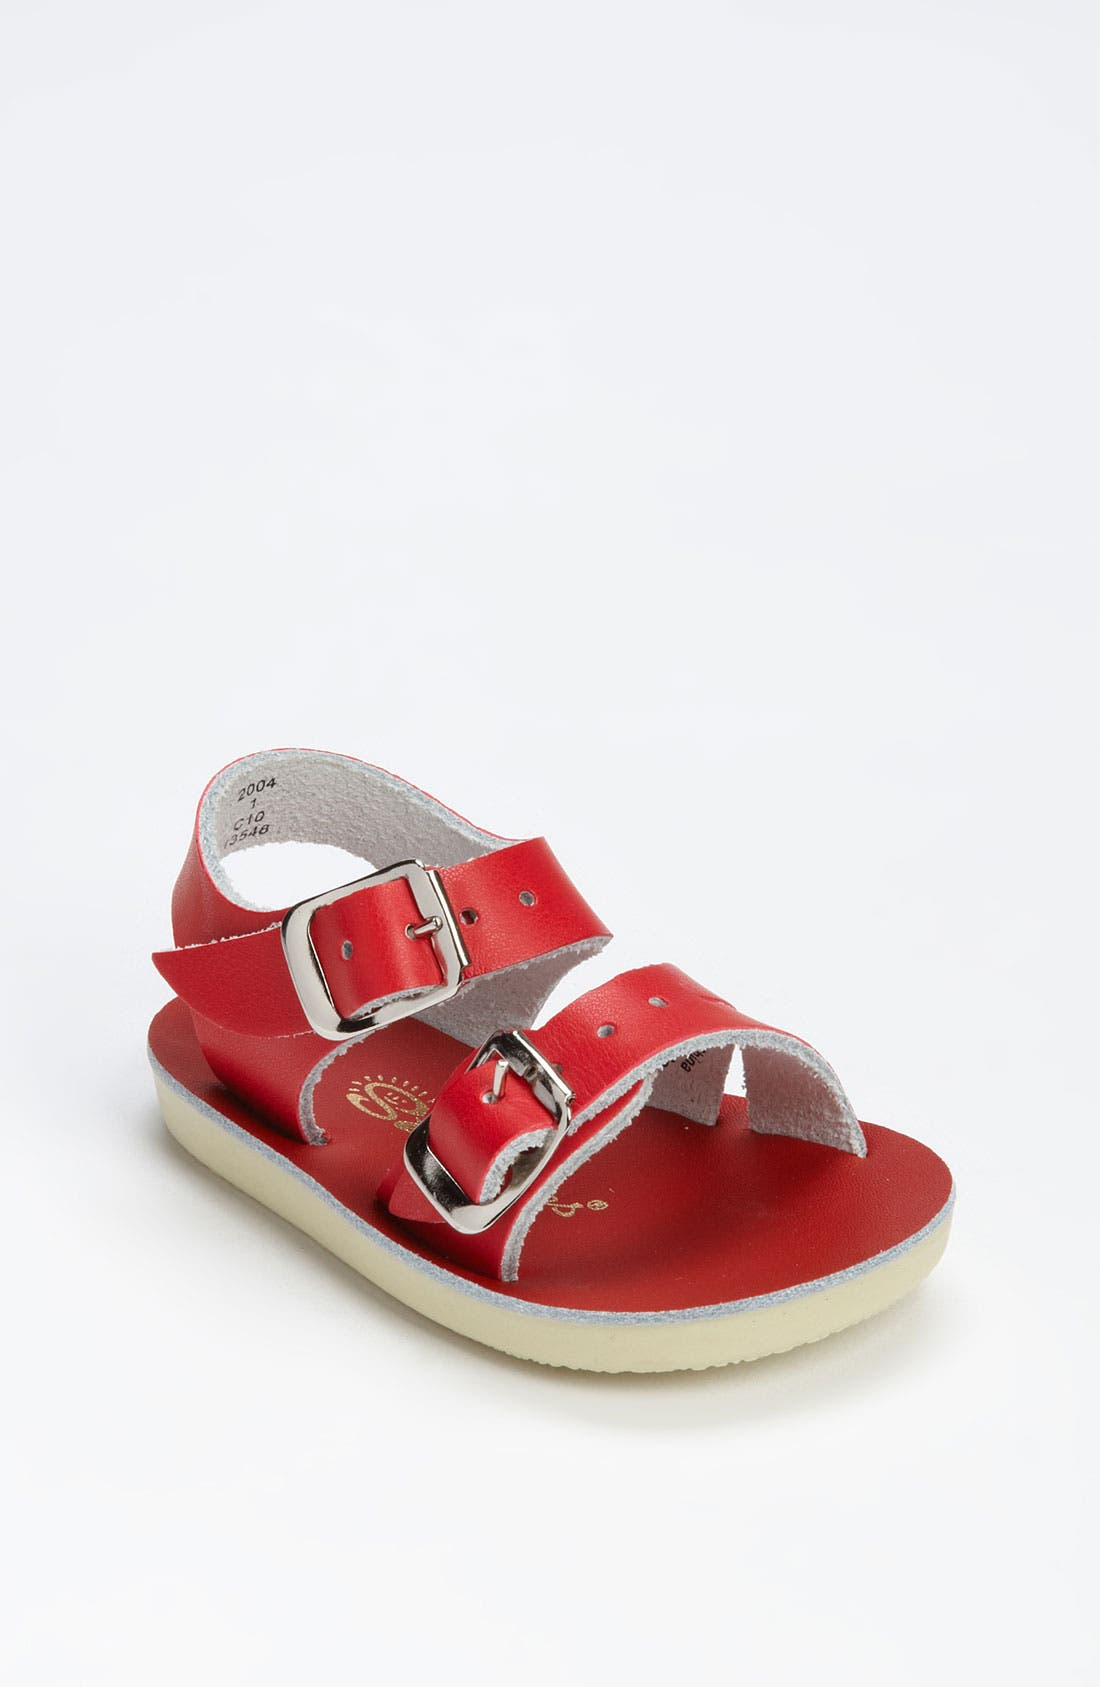 Salt Water Sandals by Hoy 'Sea Wee' Sandal (Baby)